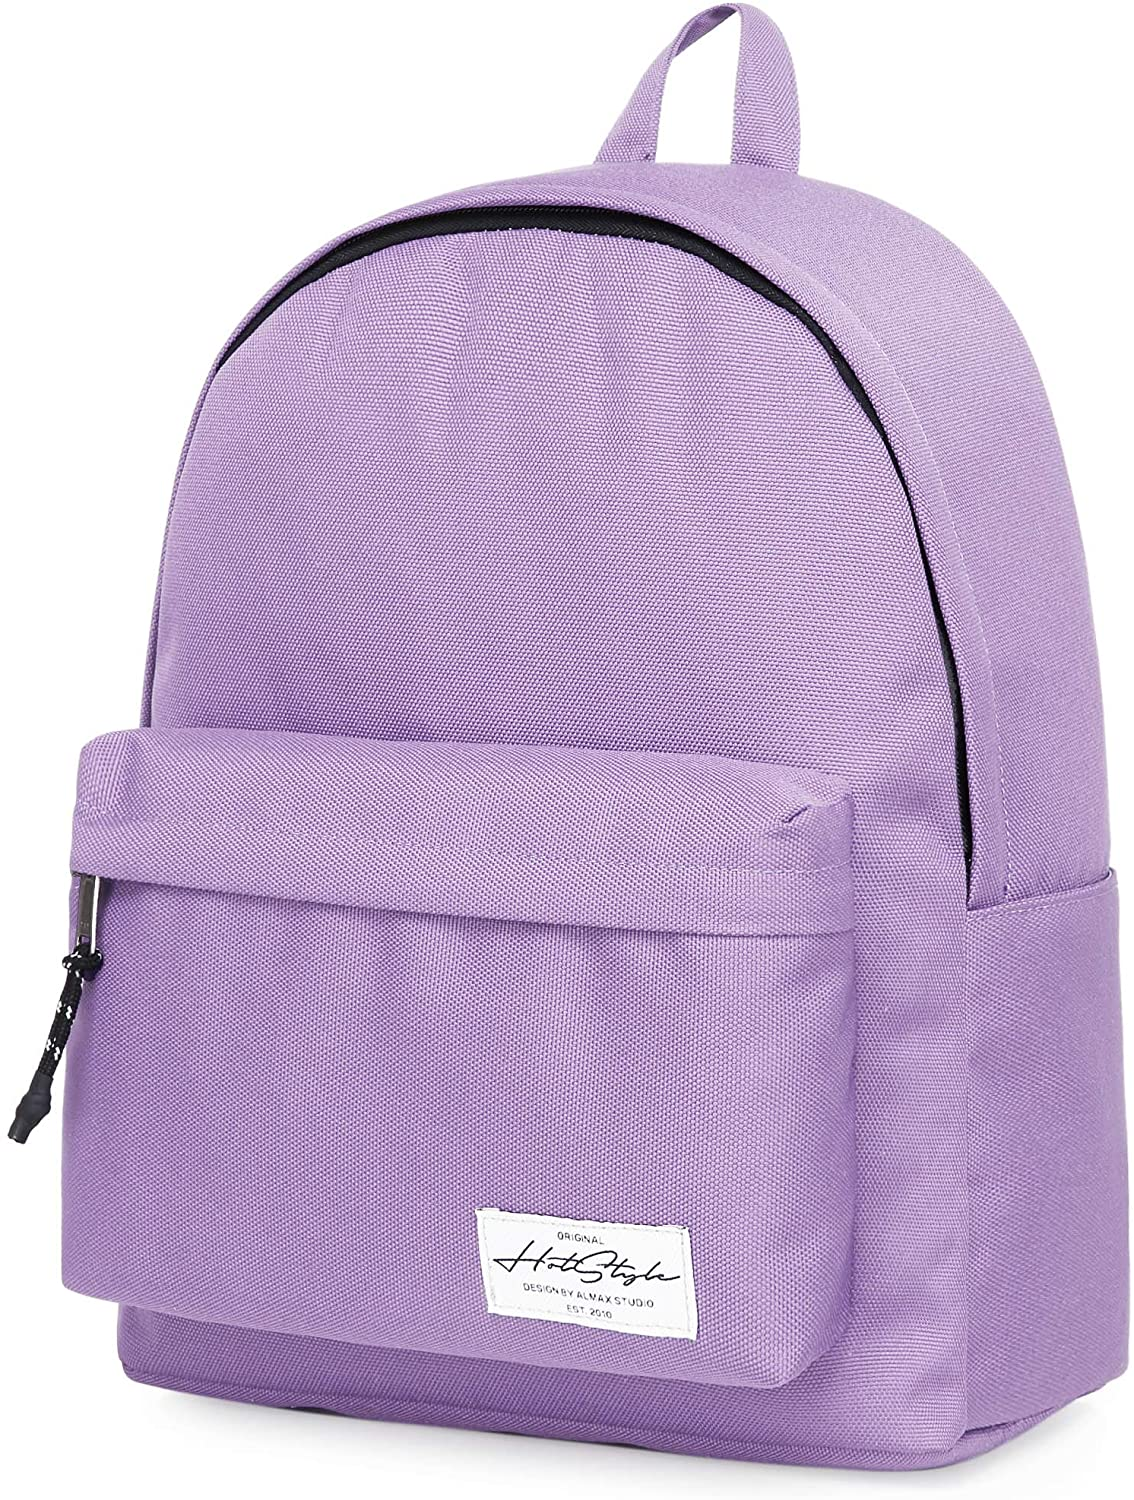 SIMPLAY+ High School Backpack, Durable Water-resistance Bookbag with 11 Storage Pockets & Padded Straps, Lavender